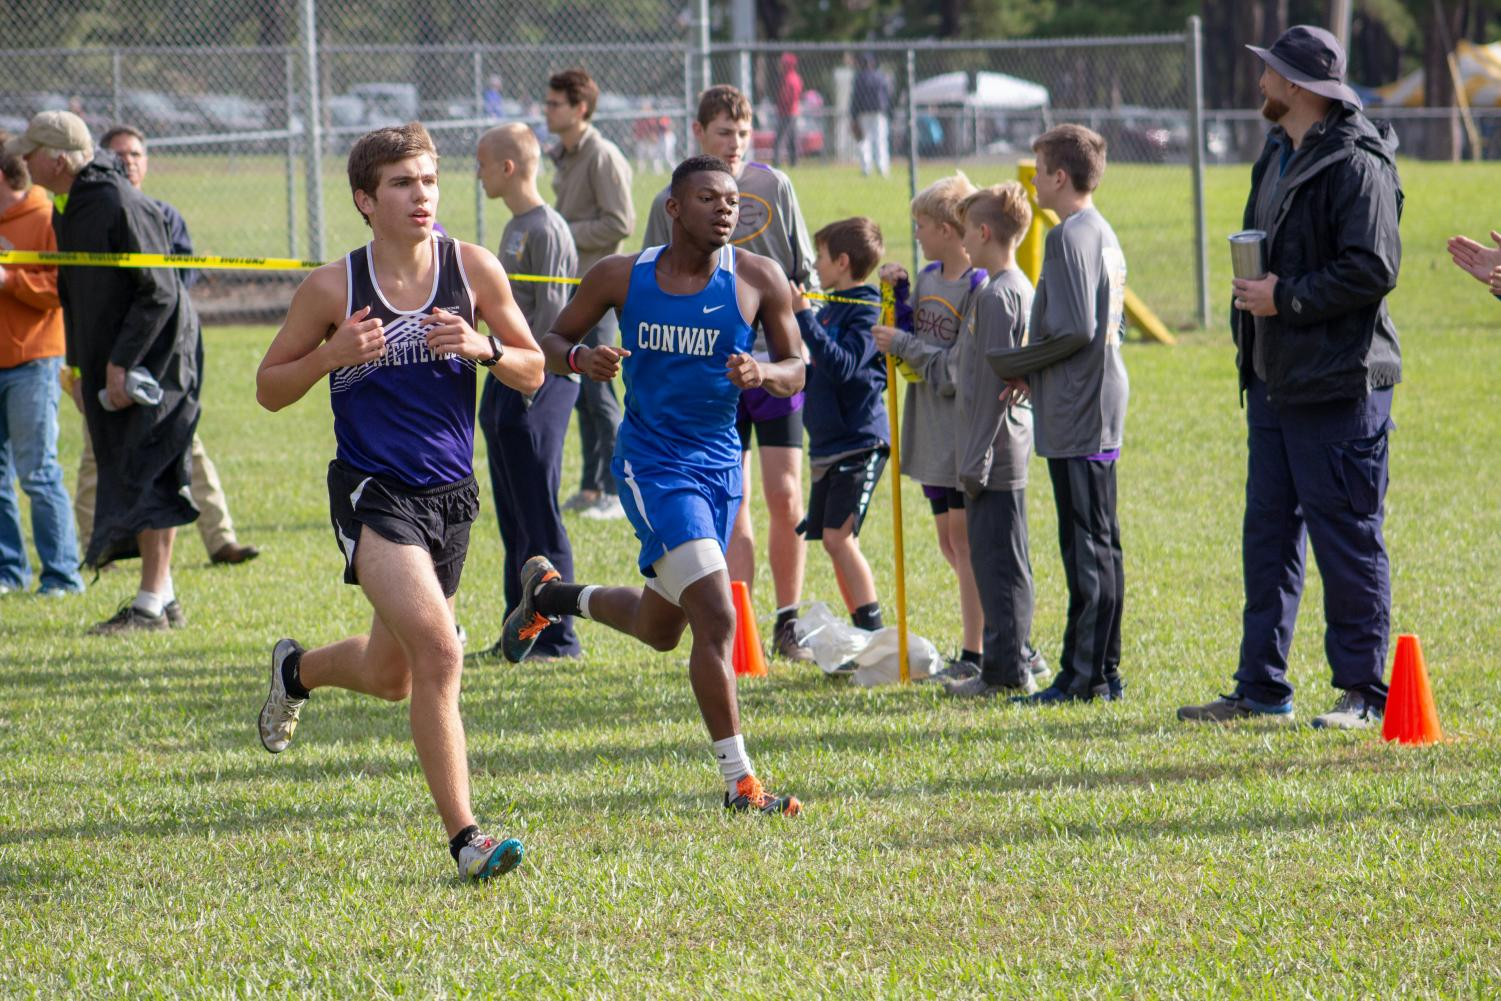 Senior Gabe Crawford working hard for the boys cross country team